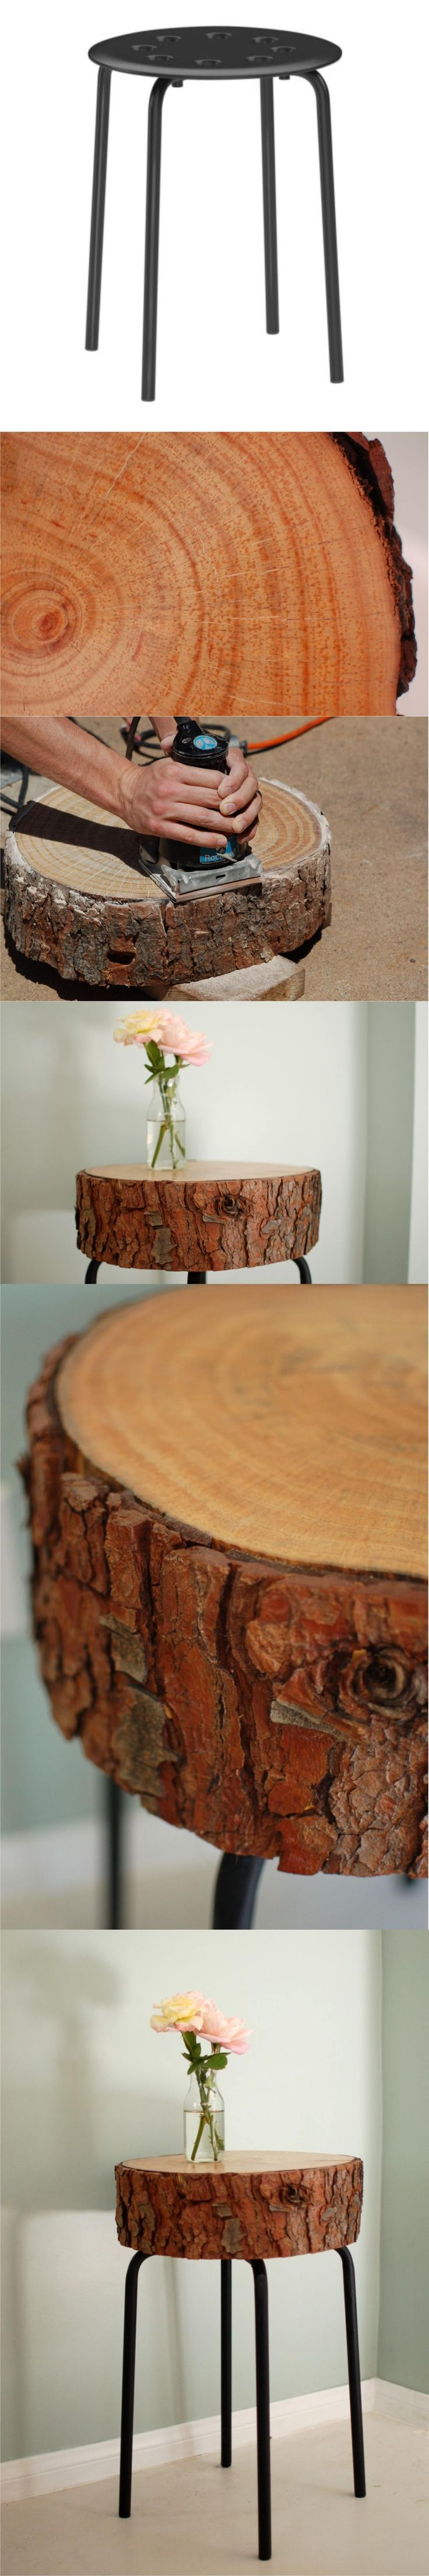 Attach a stump to a stool for cool indoor or outdoor seating.